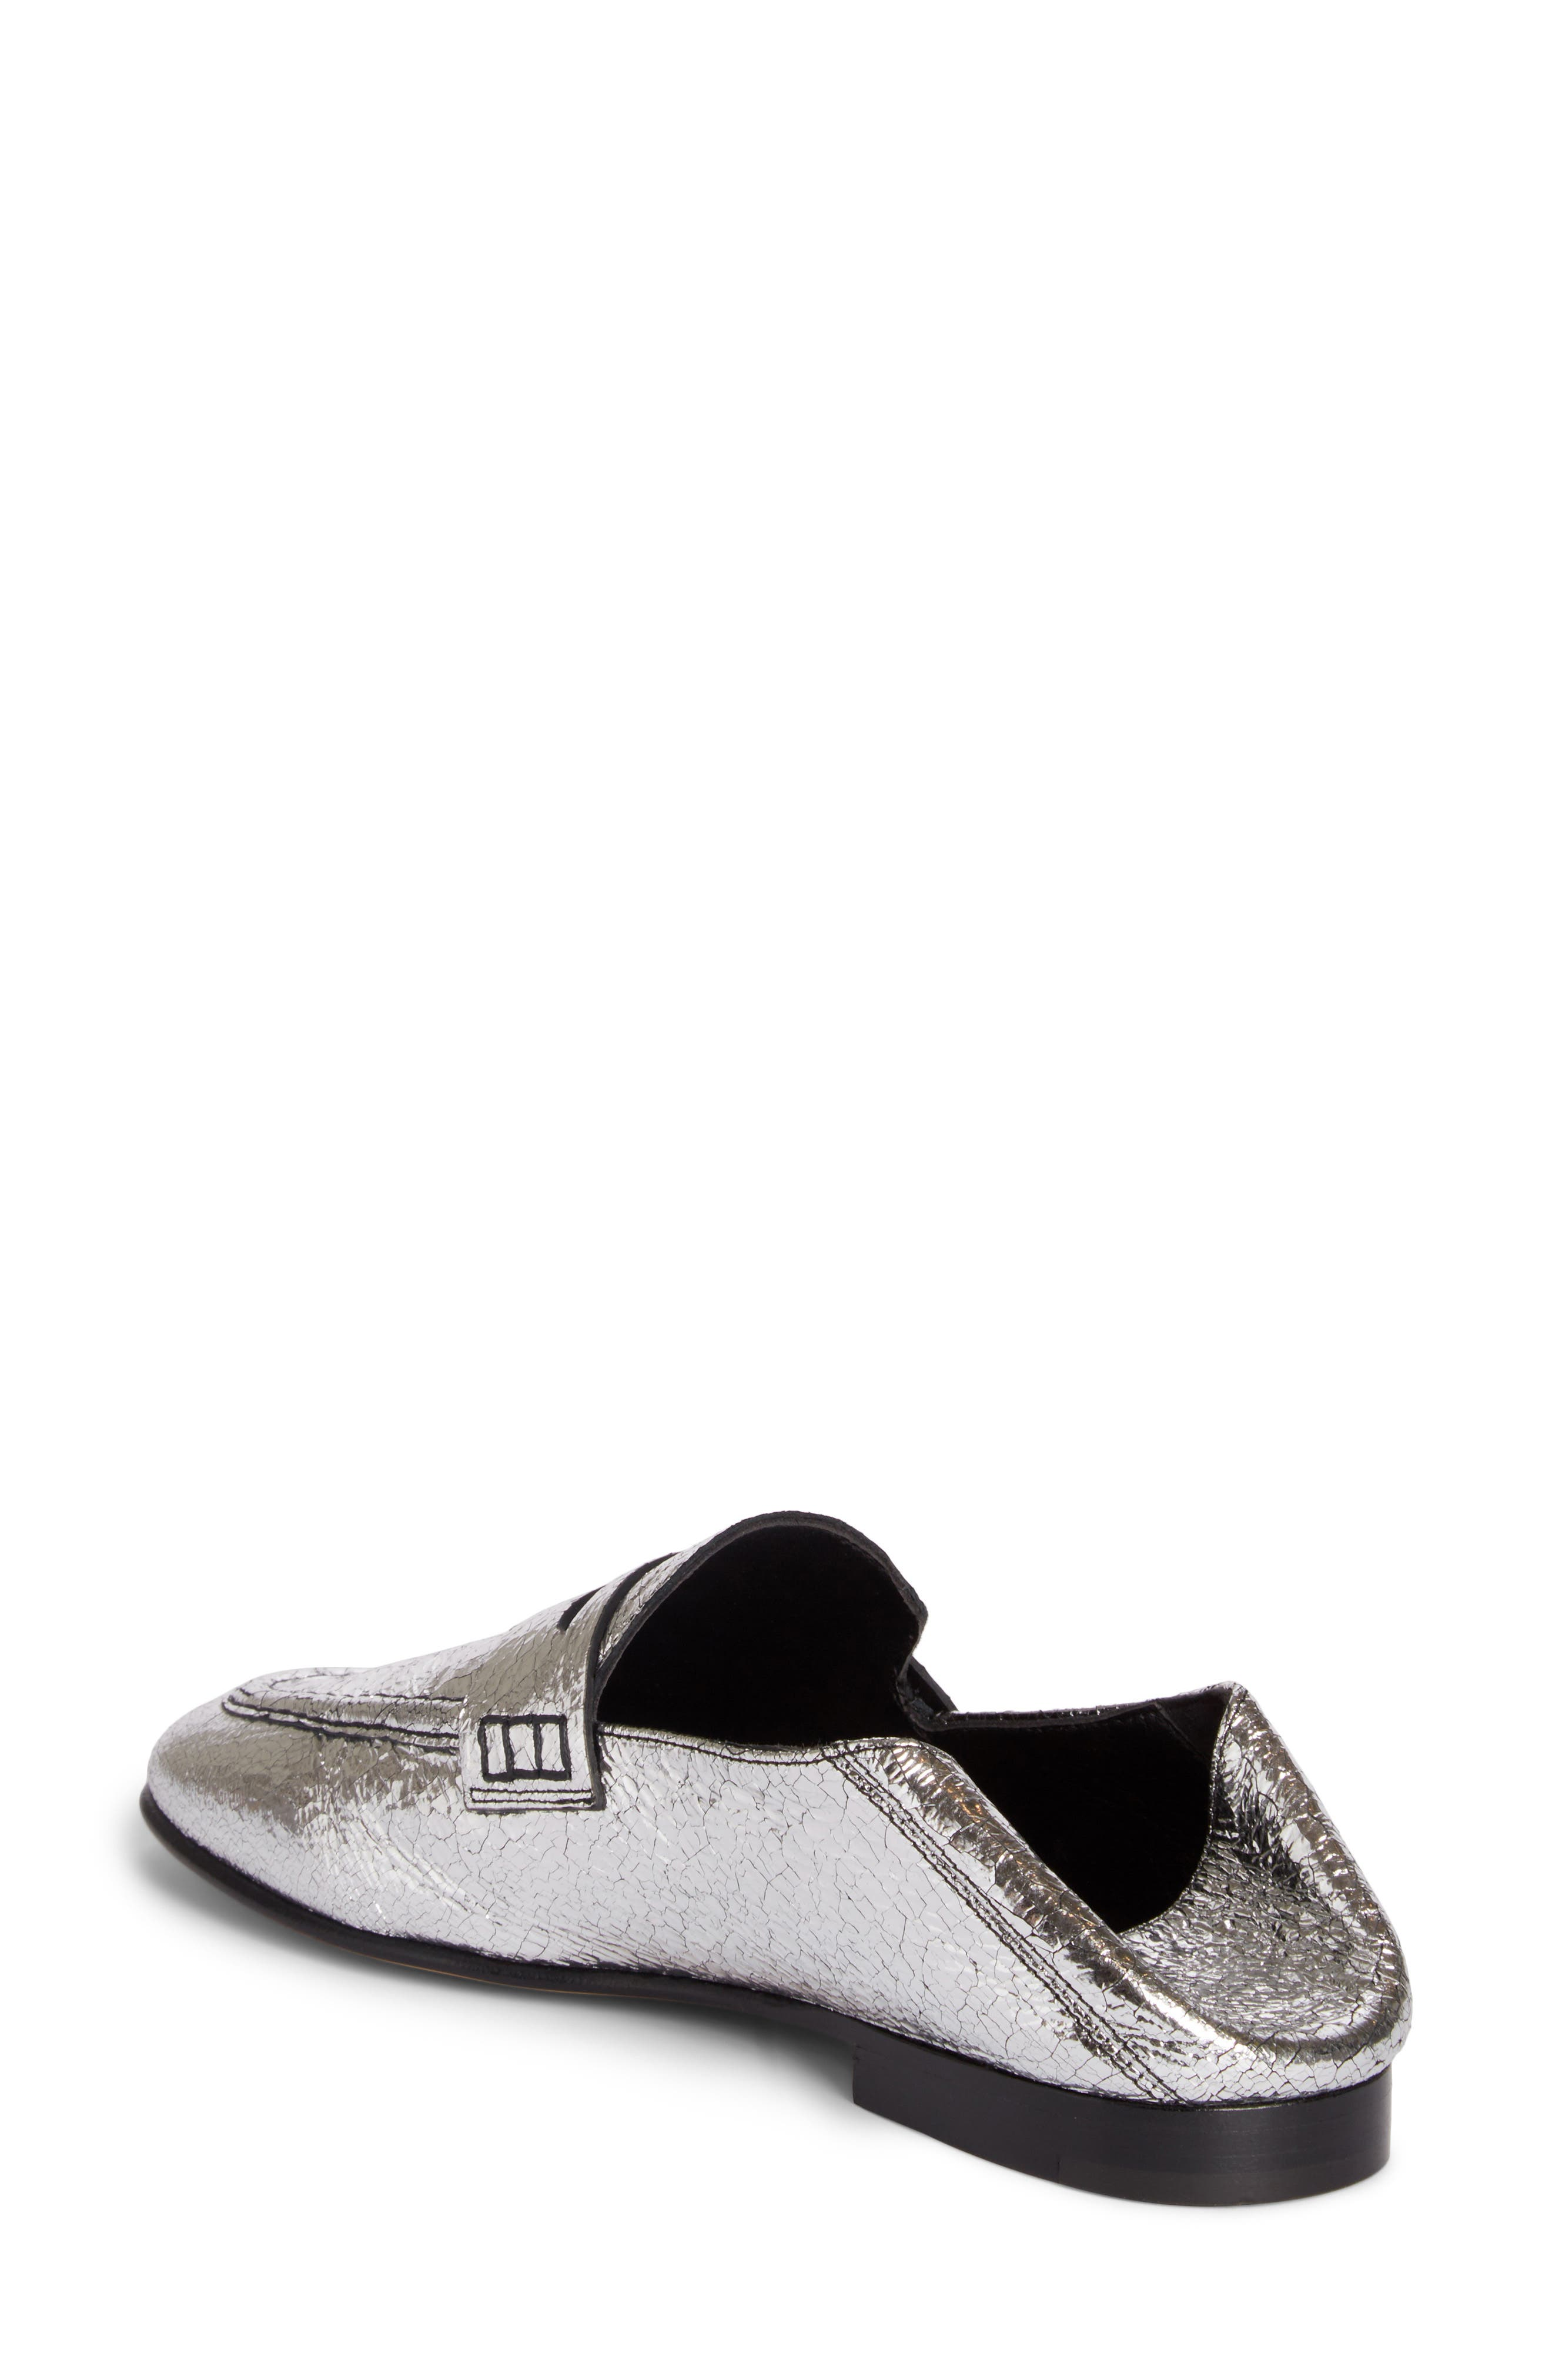 Alternate Image 3  - Isabel Marant Fezzy Convertible Loafer (Women)